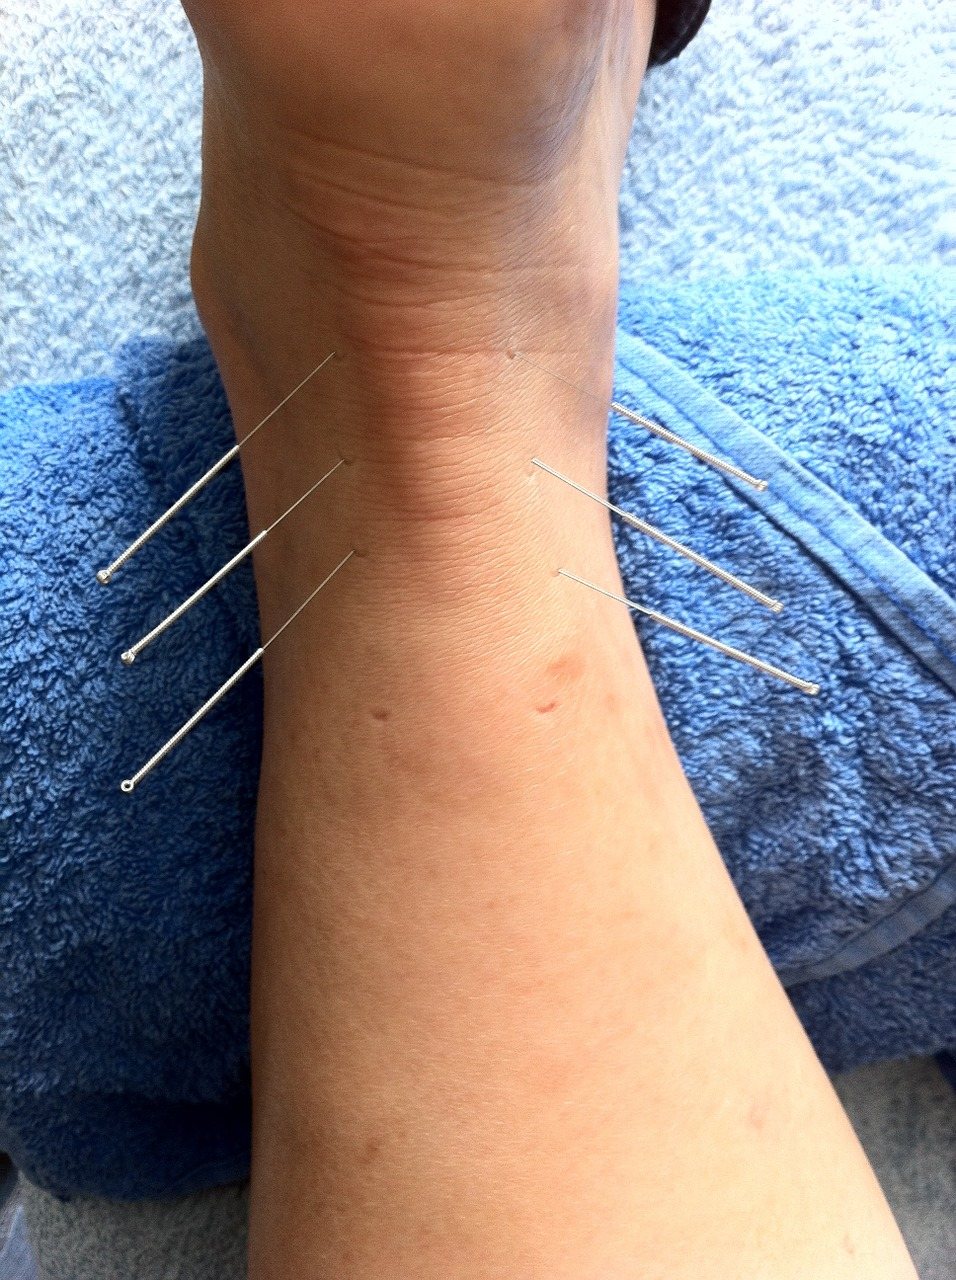 Dry needling northern suburbs